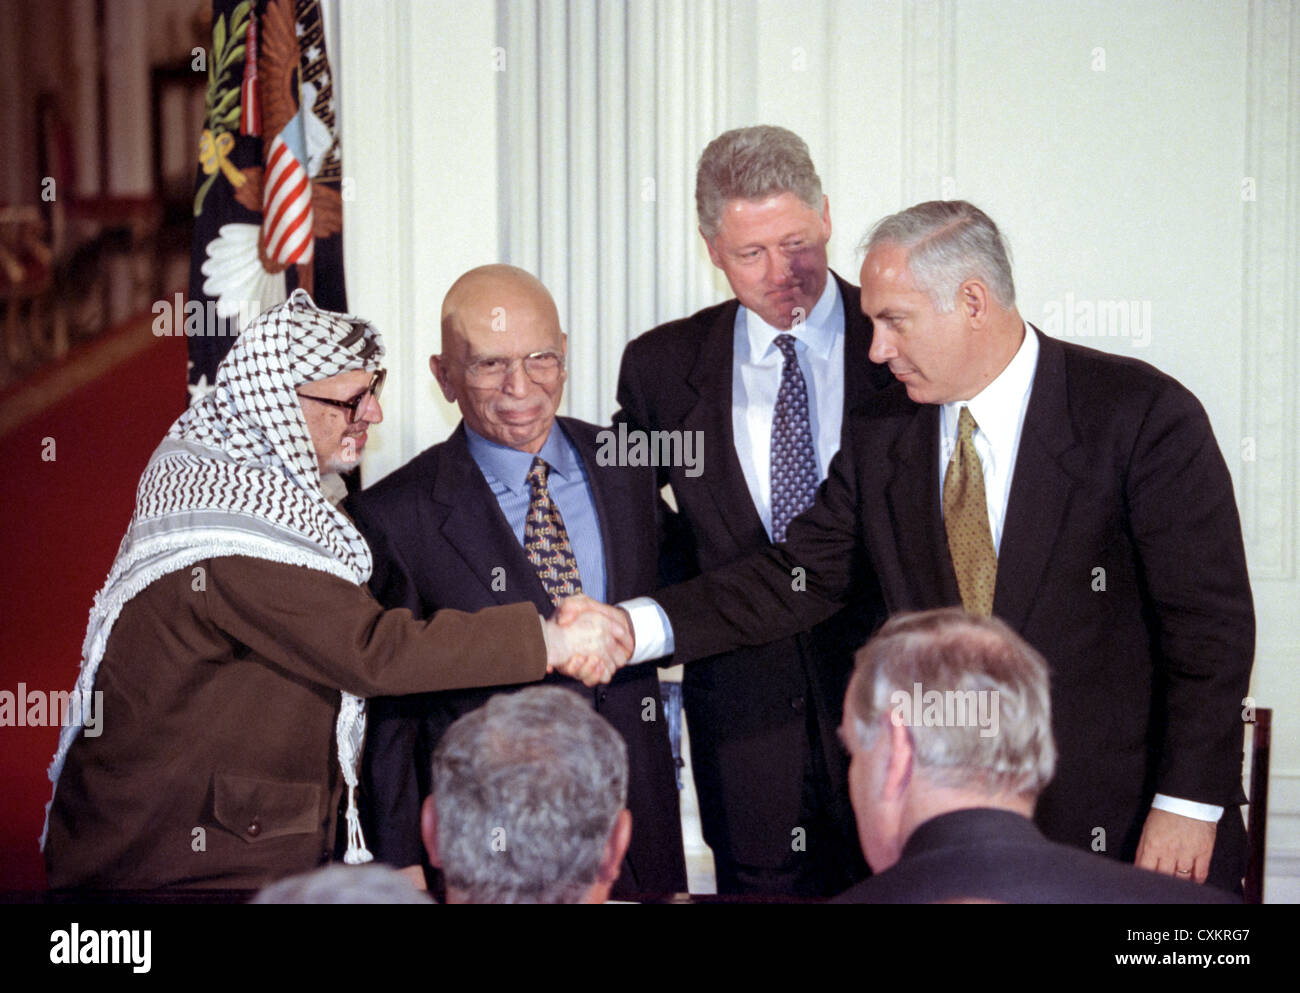 Palestinian Leader Yasser Arafat Shakes Hands With Israel Prime